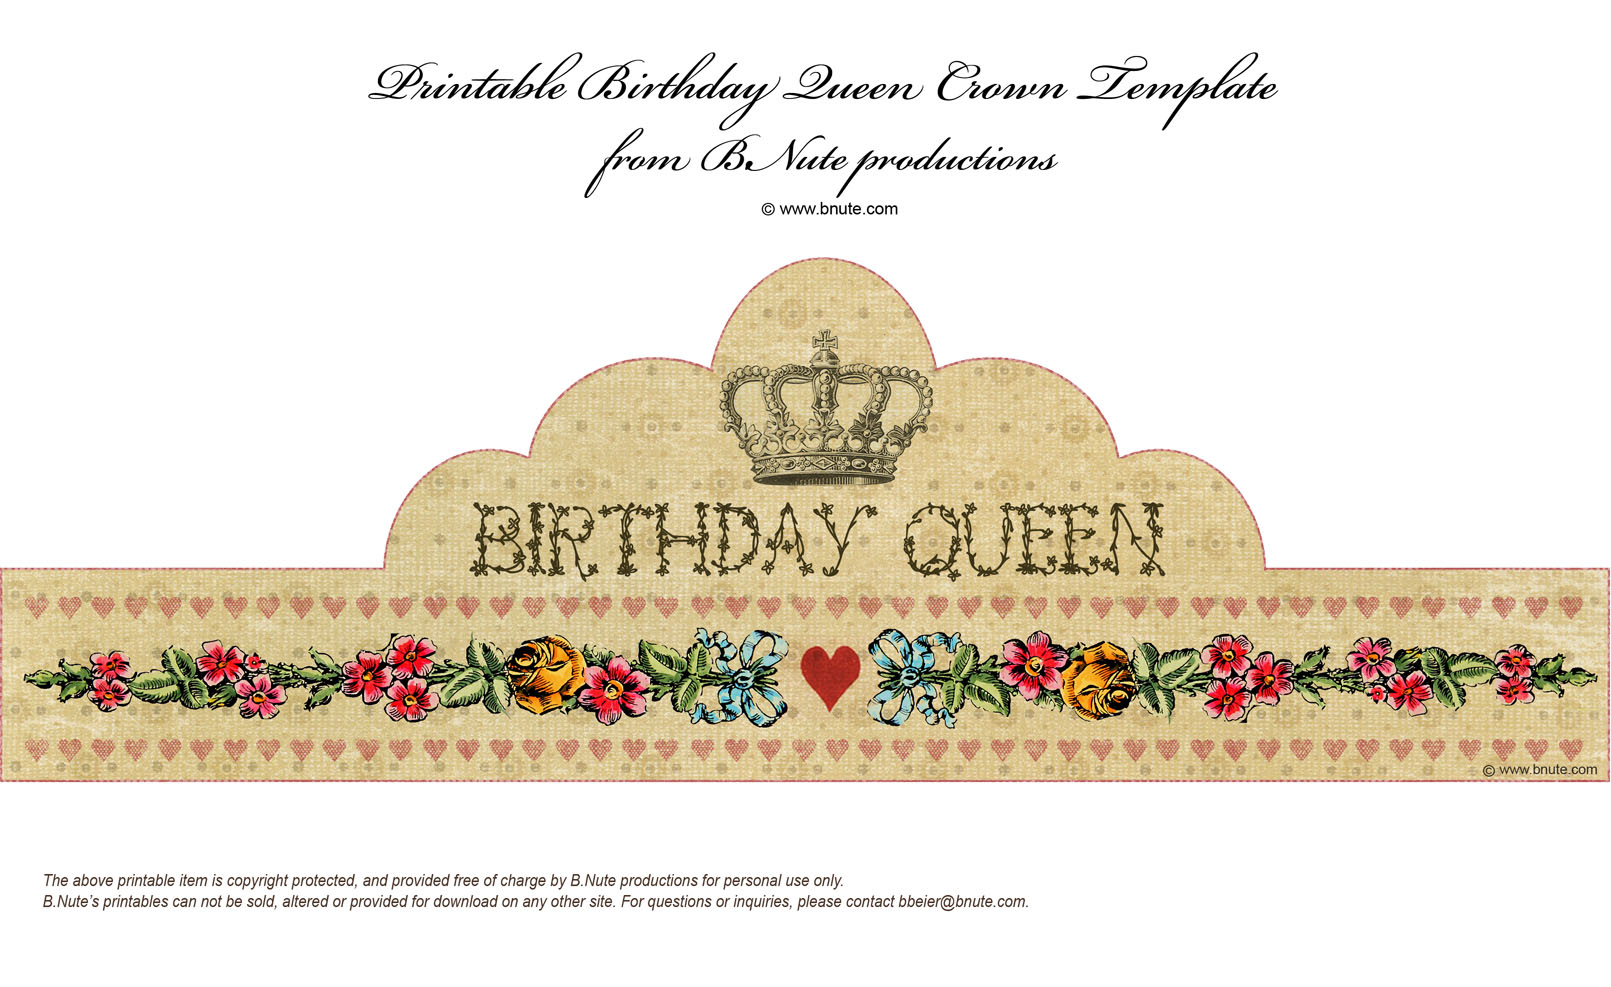 Bnute productions free printable birthday queen crown for Happy birthday crown template